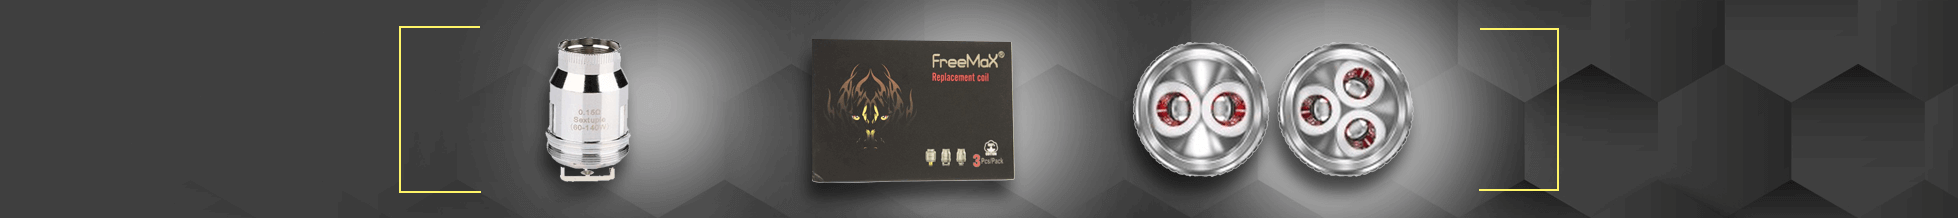 freemax-category-banner.png